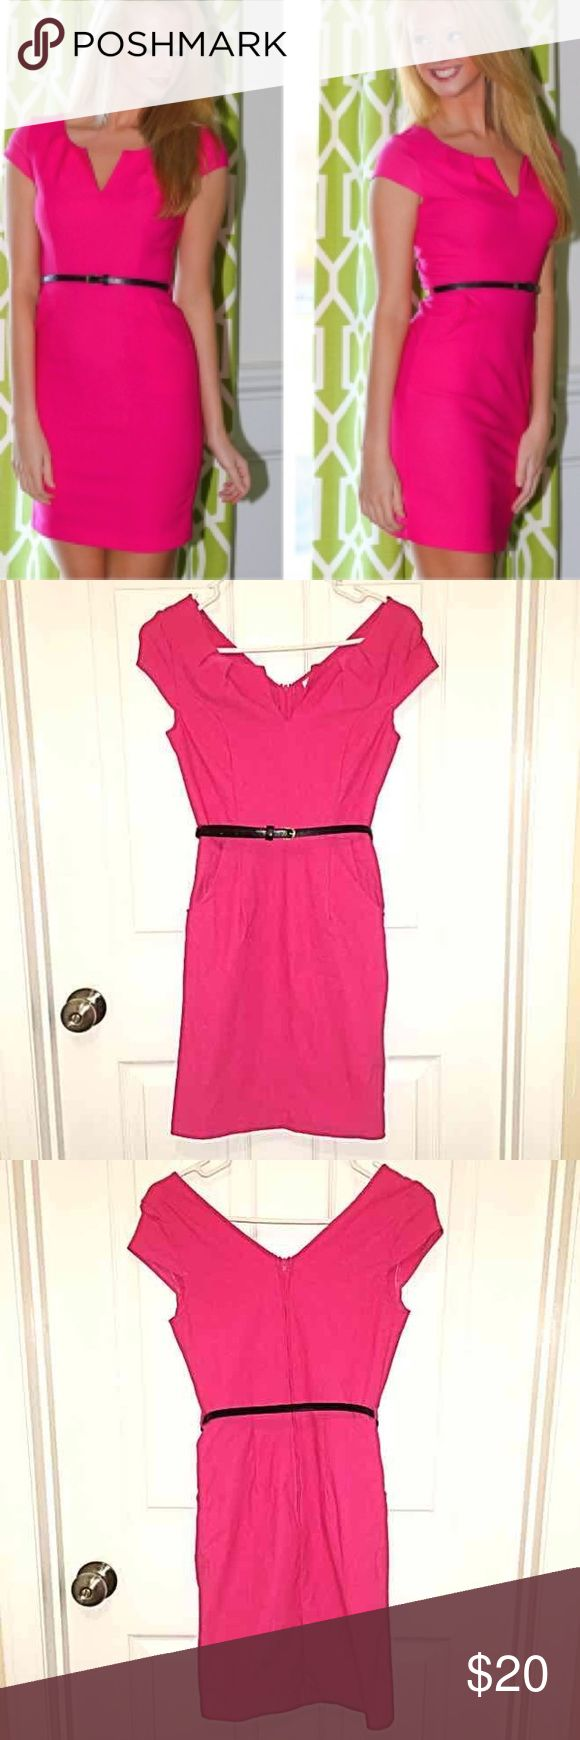 Pink Work Dress Size small (0-2). Worn once. Comes with black belt. Purchased from Red Dress. Dresses